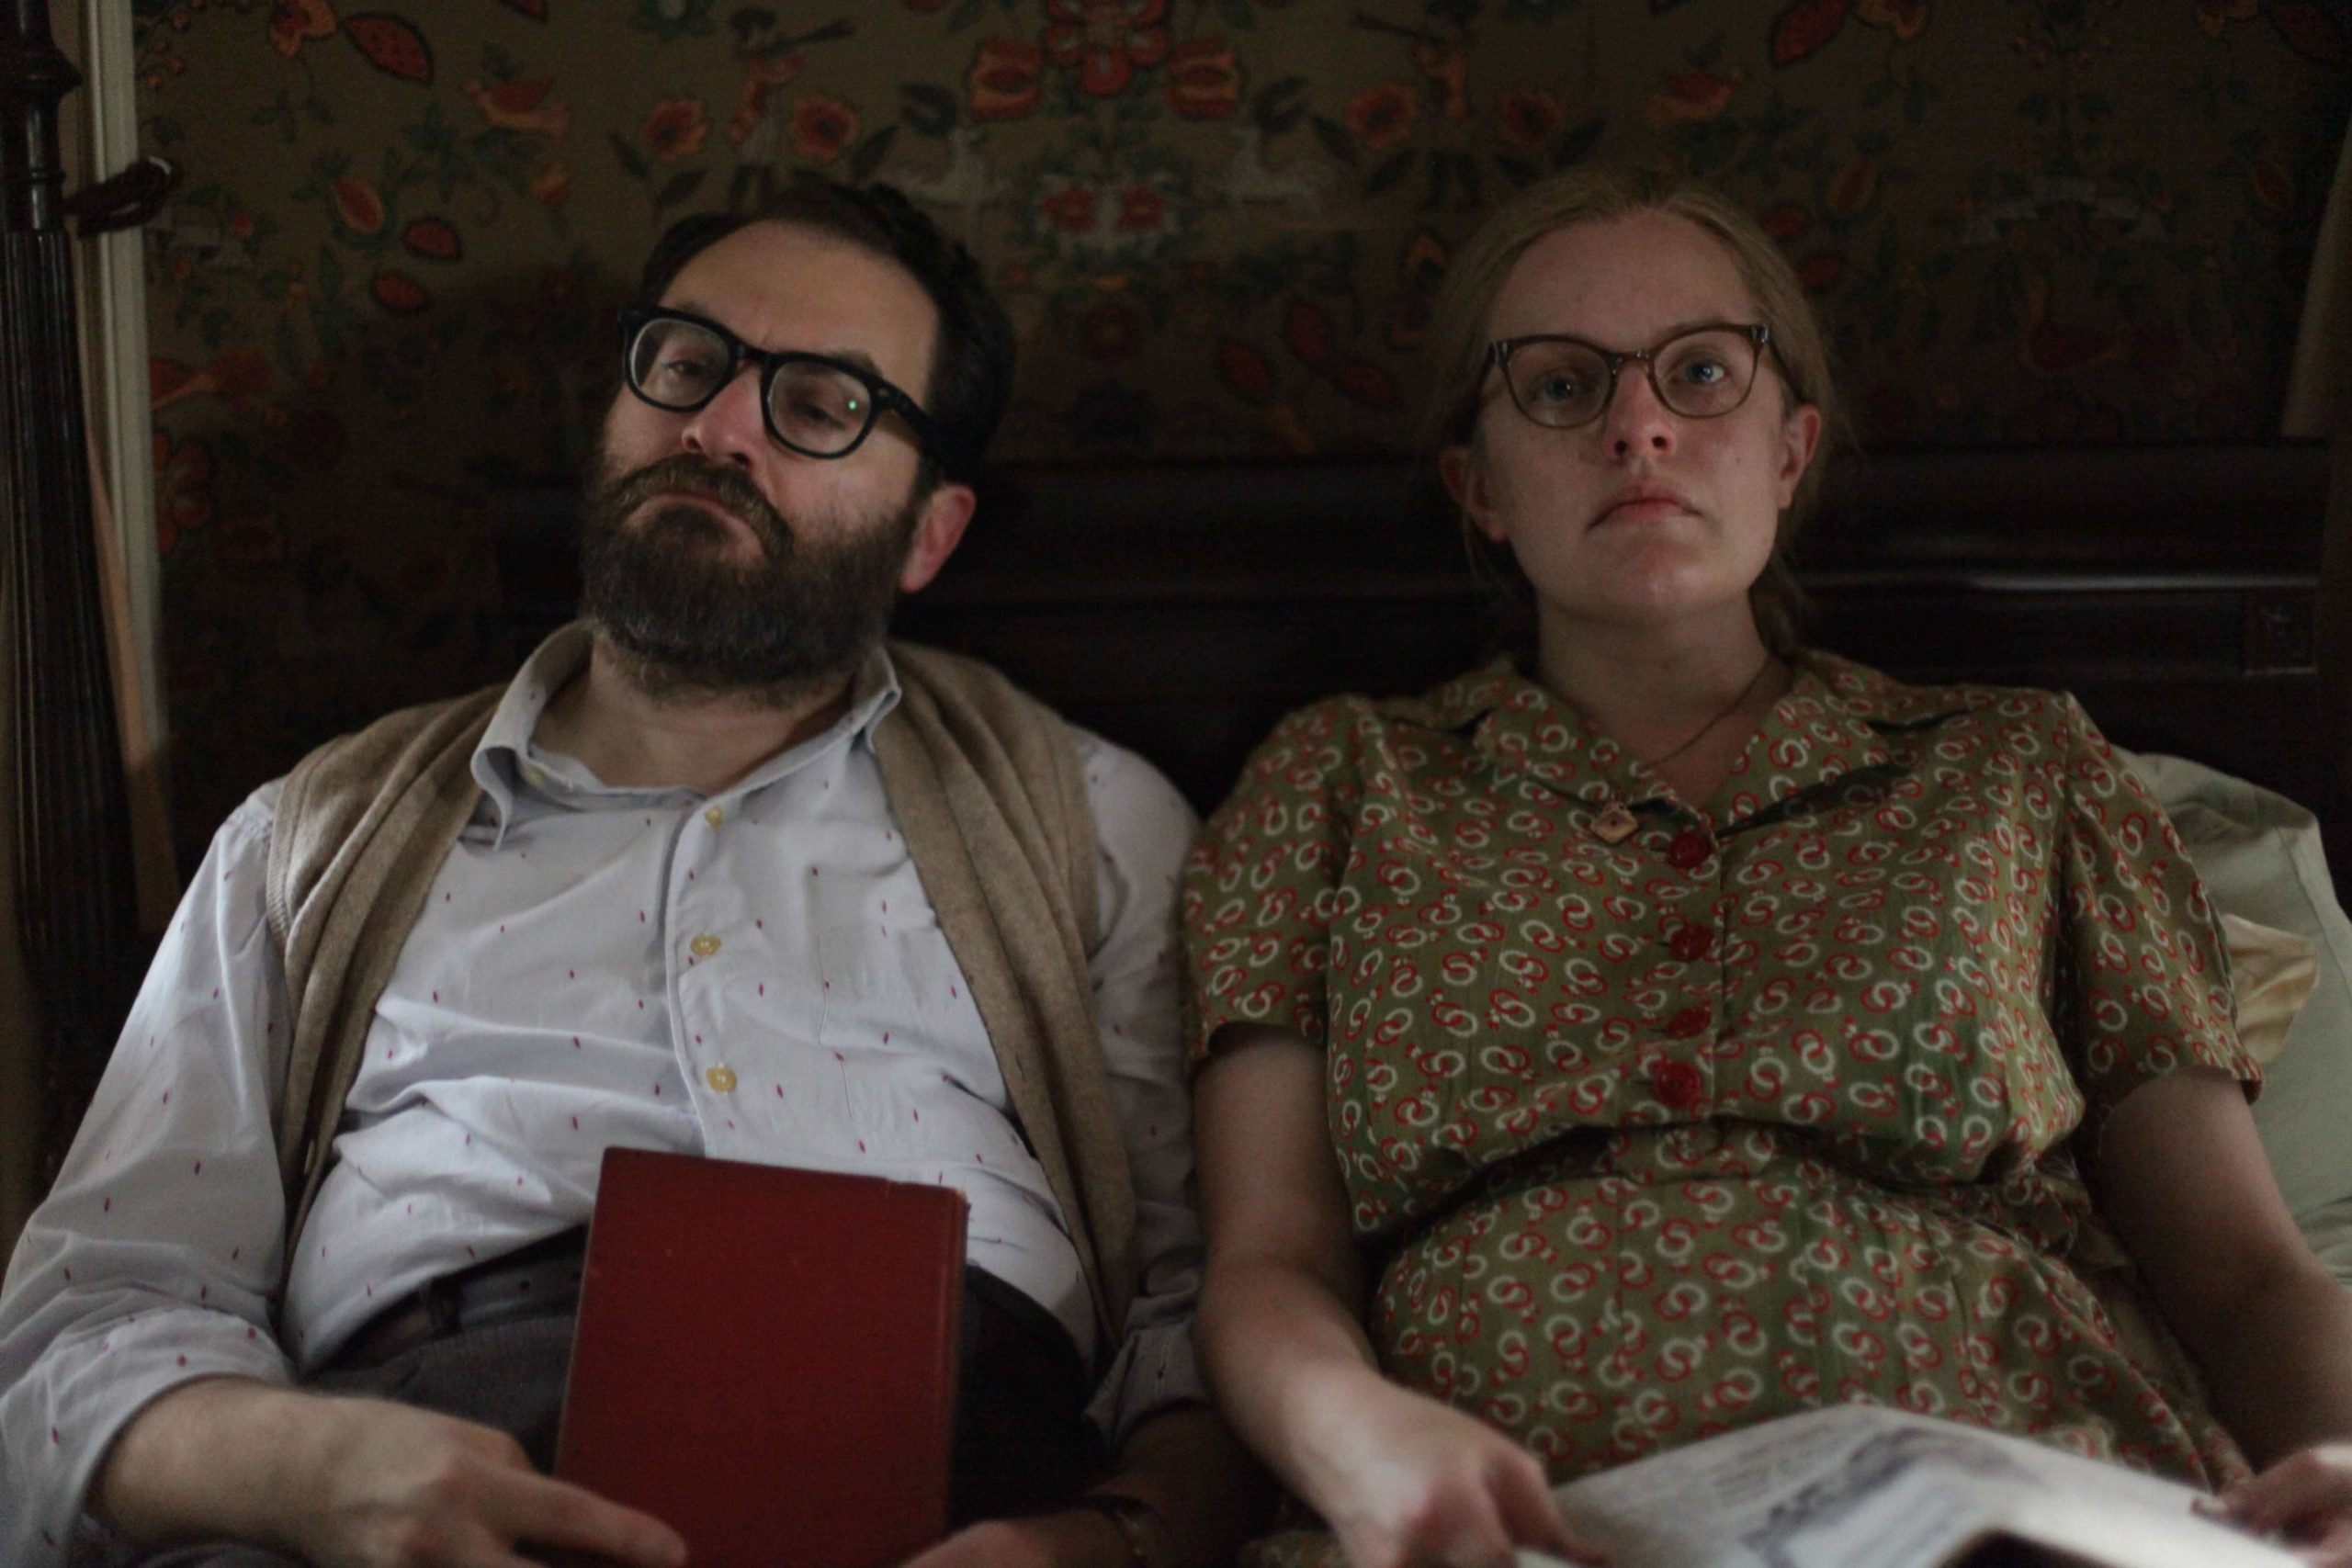 Michael Stuhlbarg and Elisabeth Moss as Stanley Hyman and Shirley Jackson in the new film